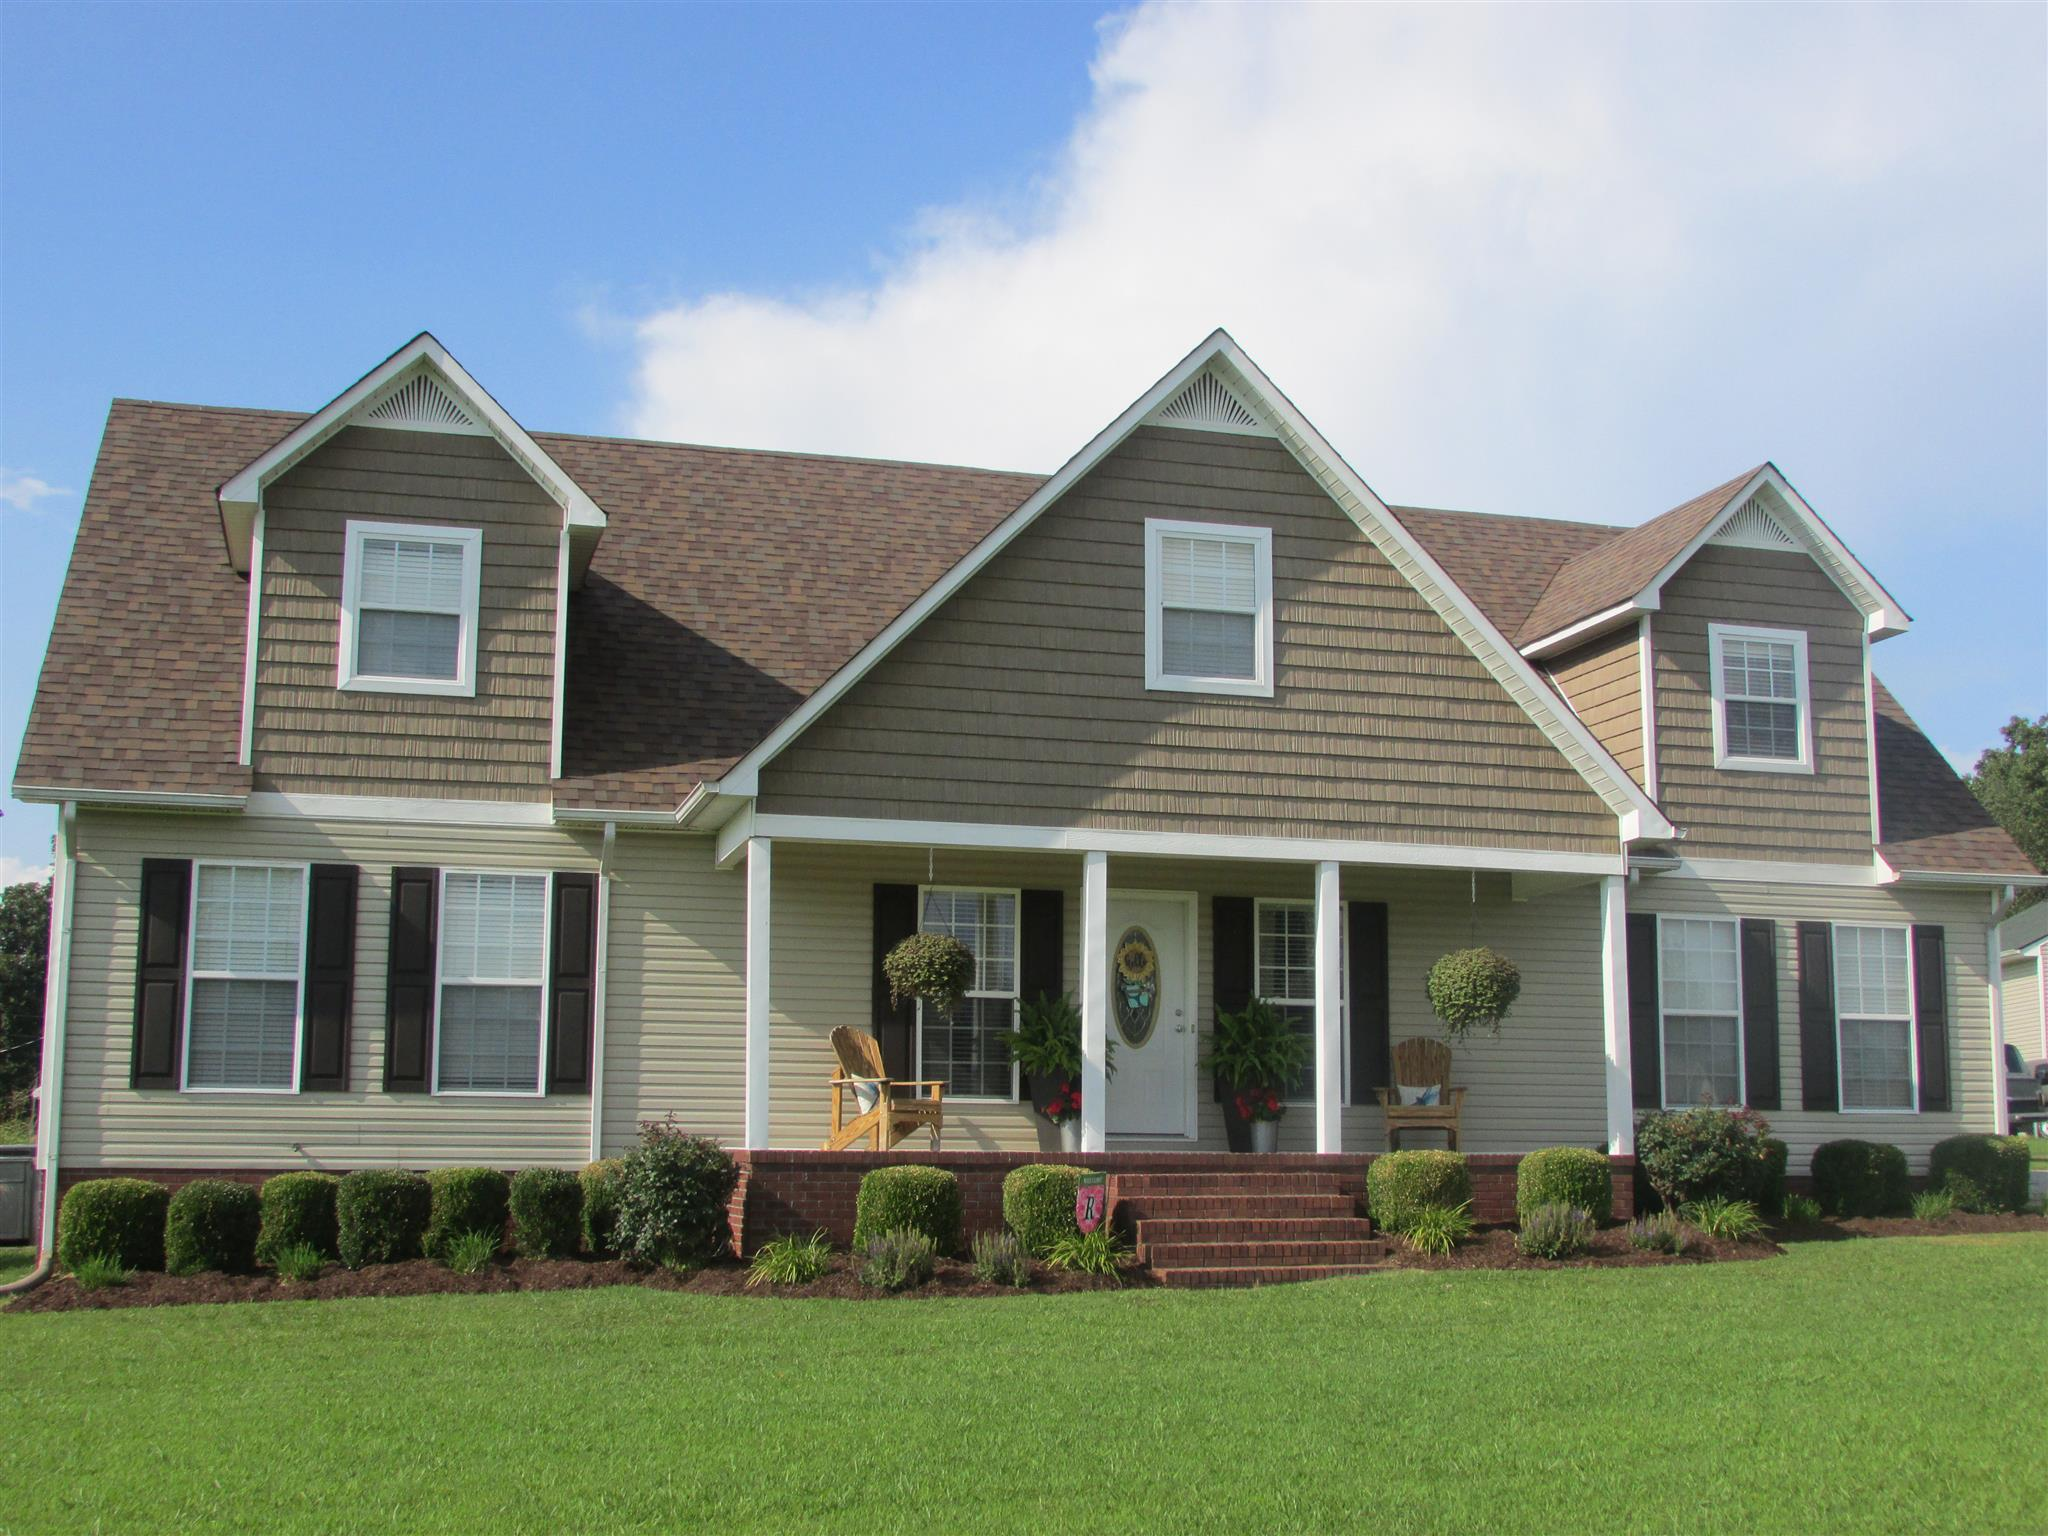 241 Gulley Dr, Summertown, TN 38483 - Summertown, TN real estate listing